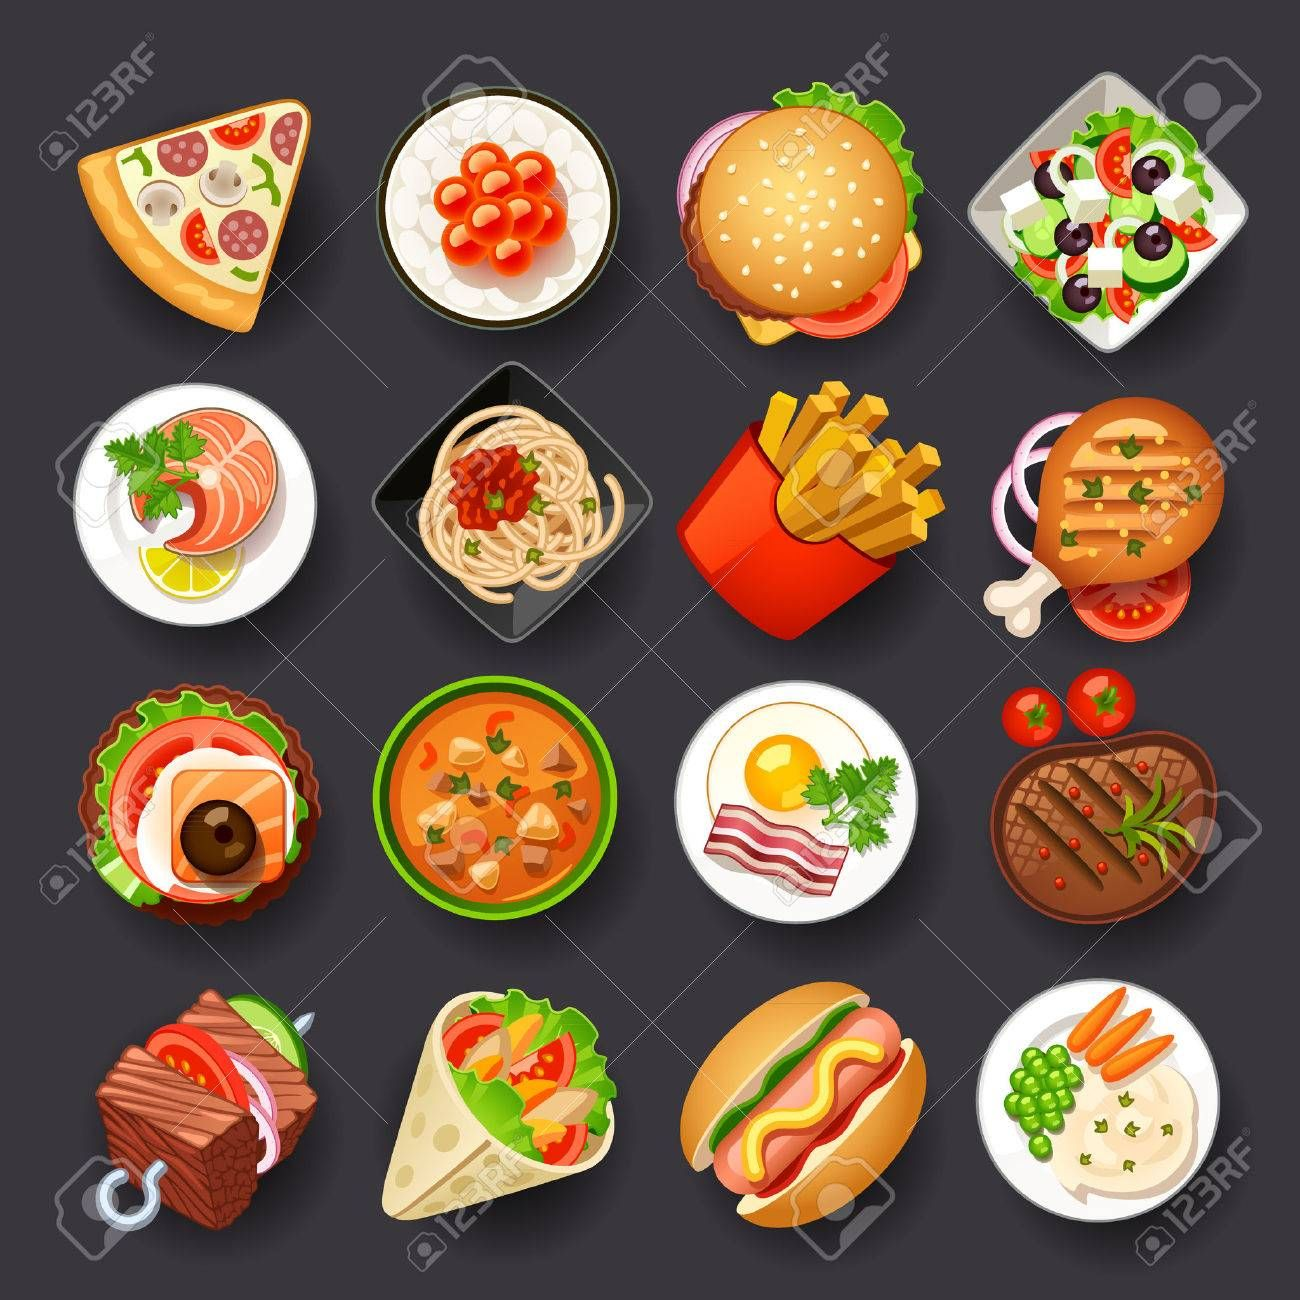 Dishes Icon Set Ad Dishes Icon Set Food Icons Vector Food Food Illustrations